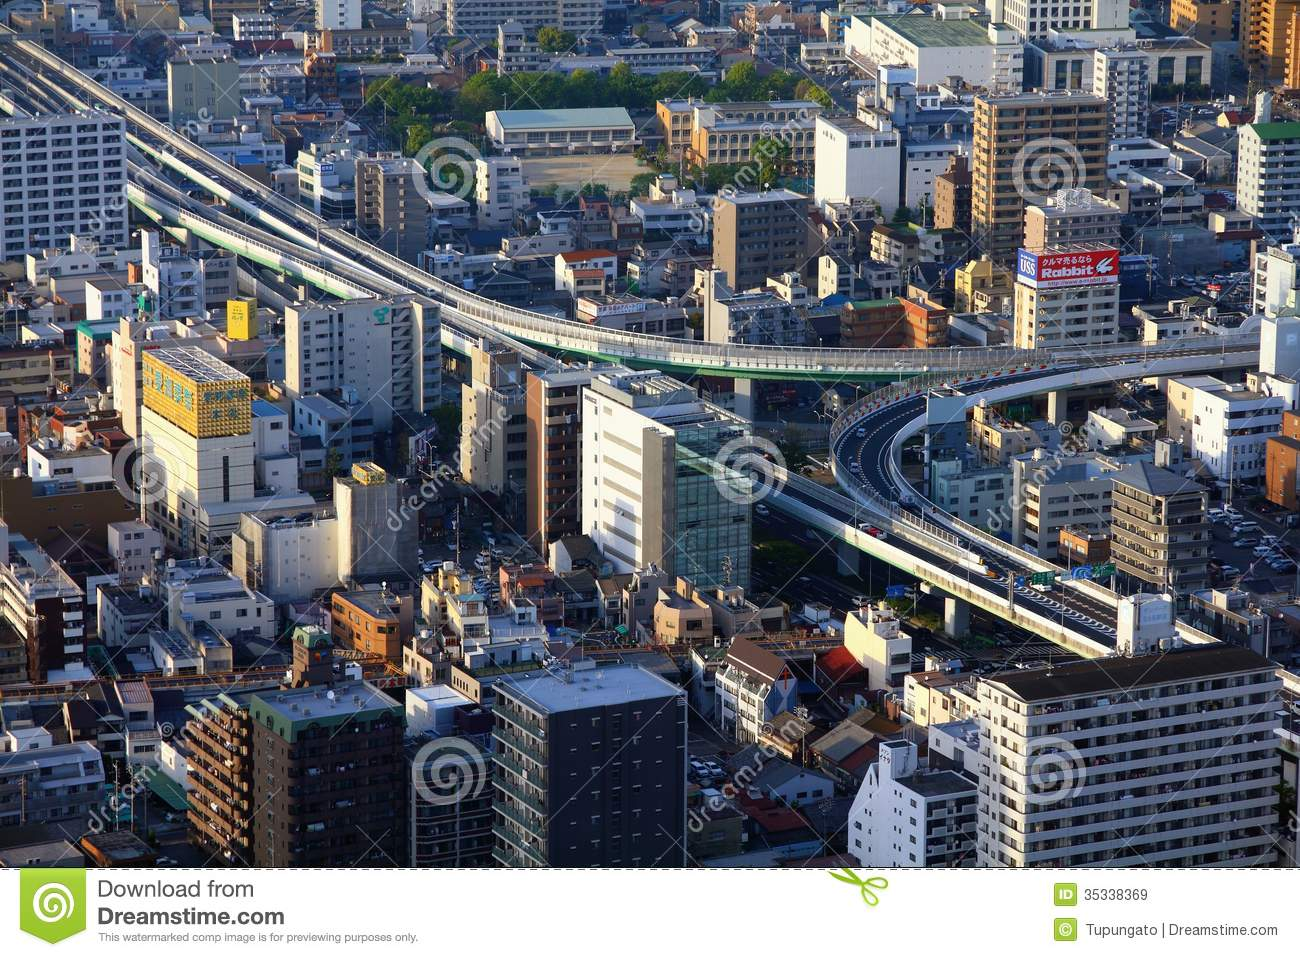 Nagoya Japan  city images : ... Nagoya, Japan. Nagoya is the 4th largest urban area in Japan with 8.74